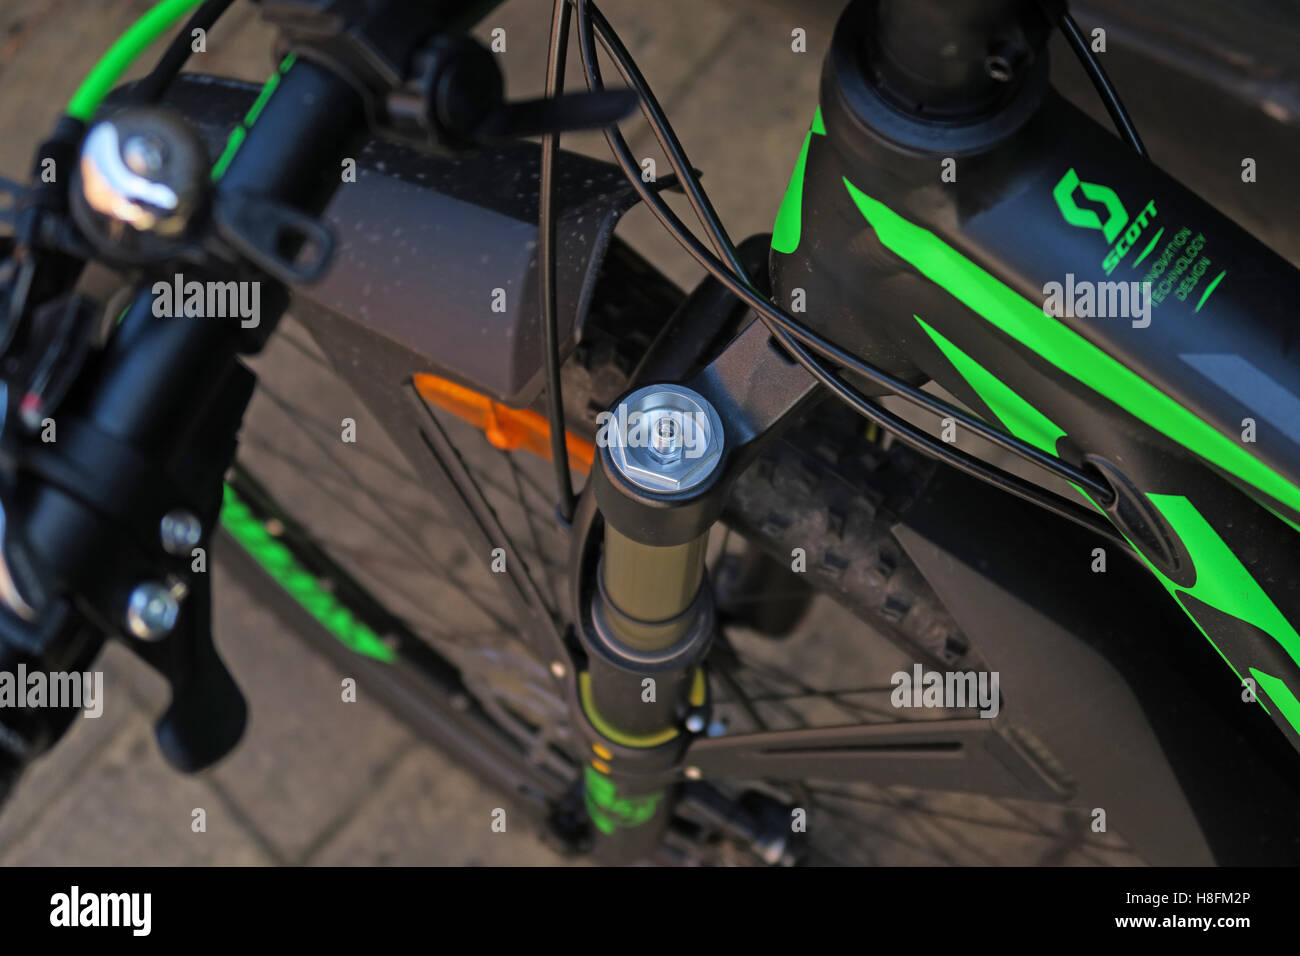 MTB shock pump being used on a Scott Scale 950 Cycle - shock cover cap removed - Stock Image